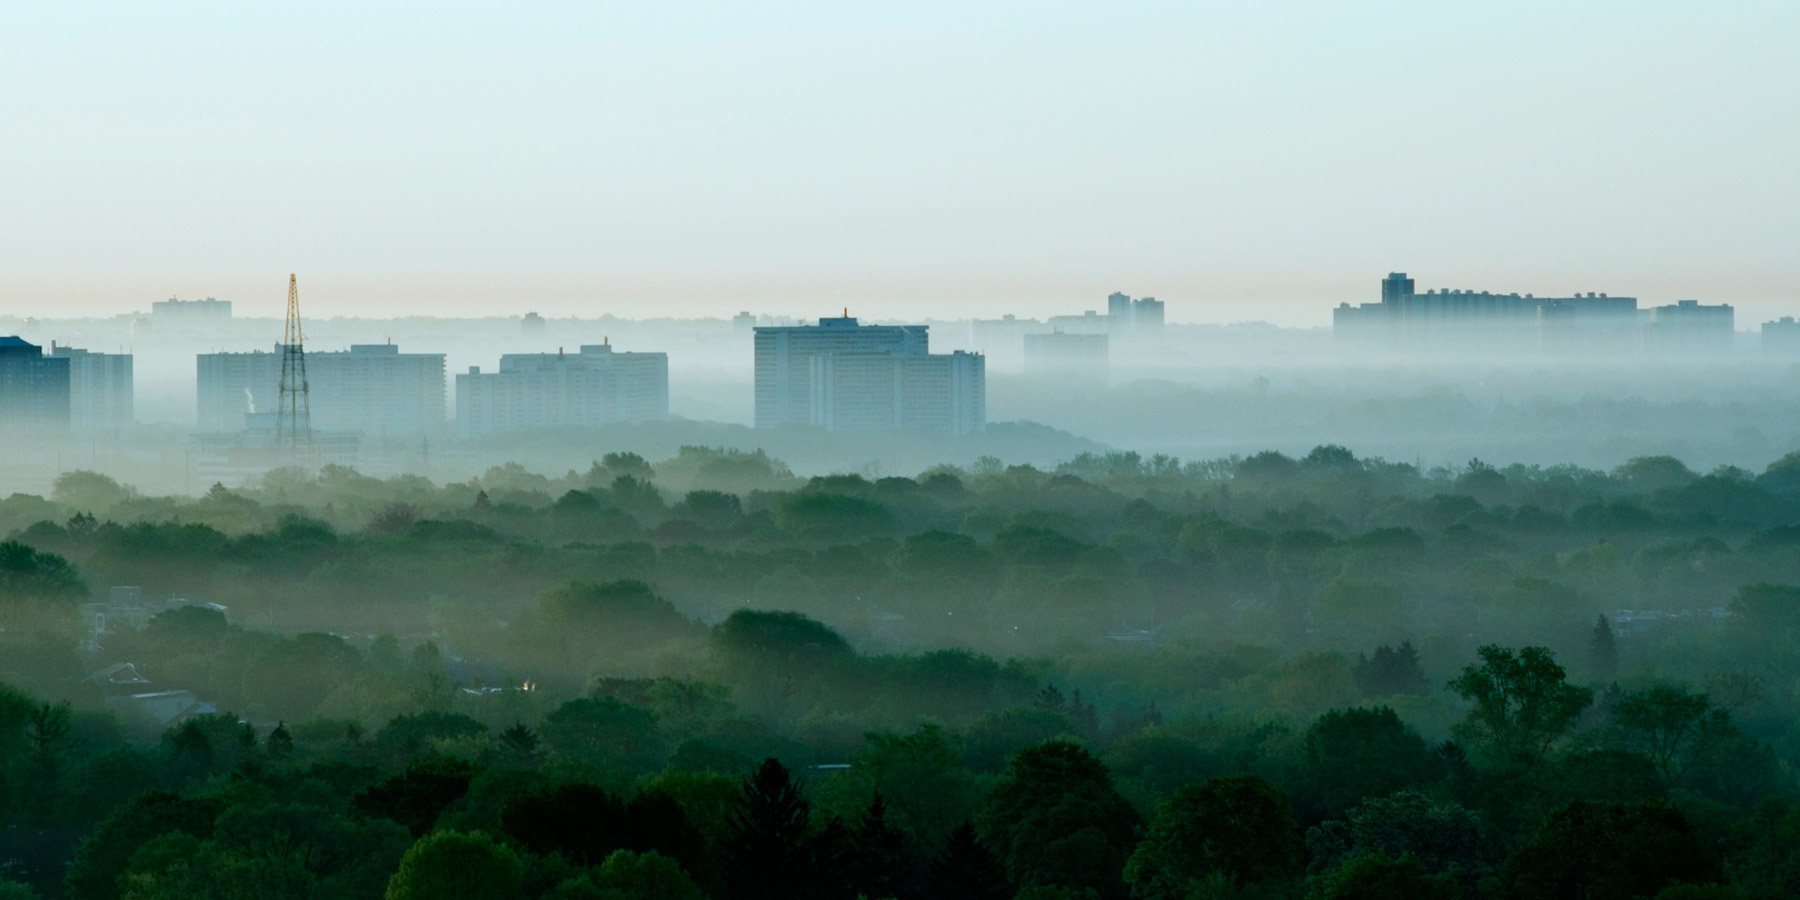 Scientists Turn to Deep Learning to Improve Air Quality Forecasts